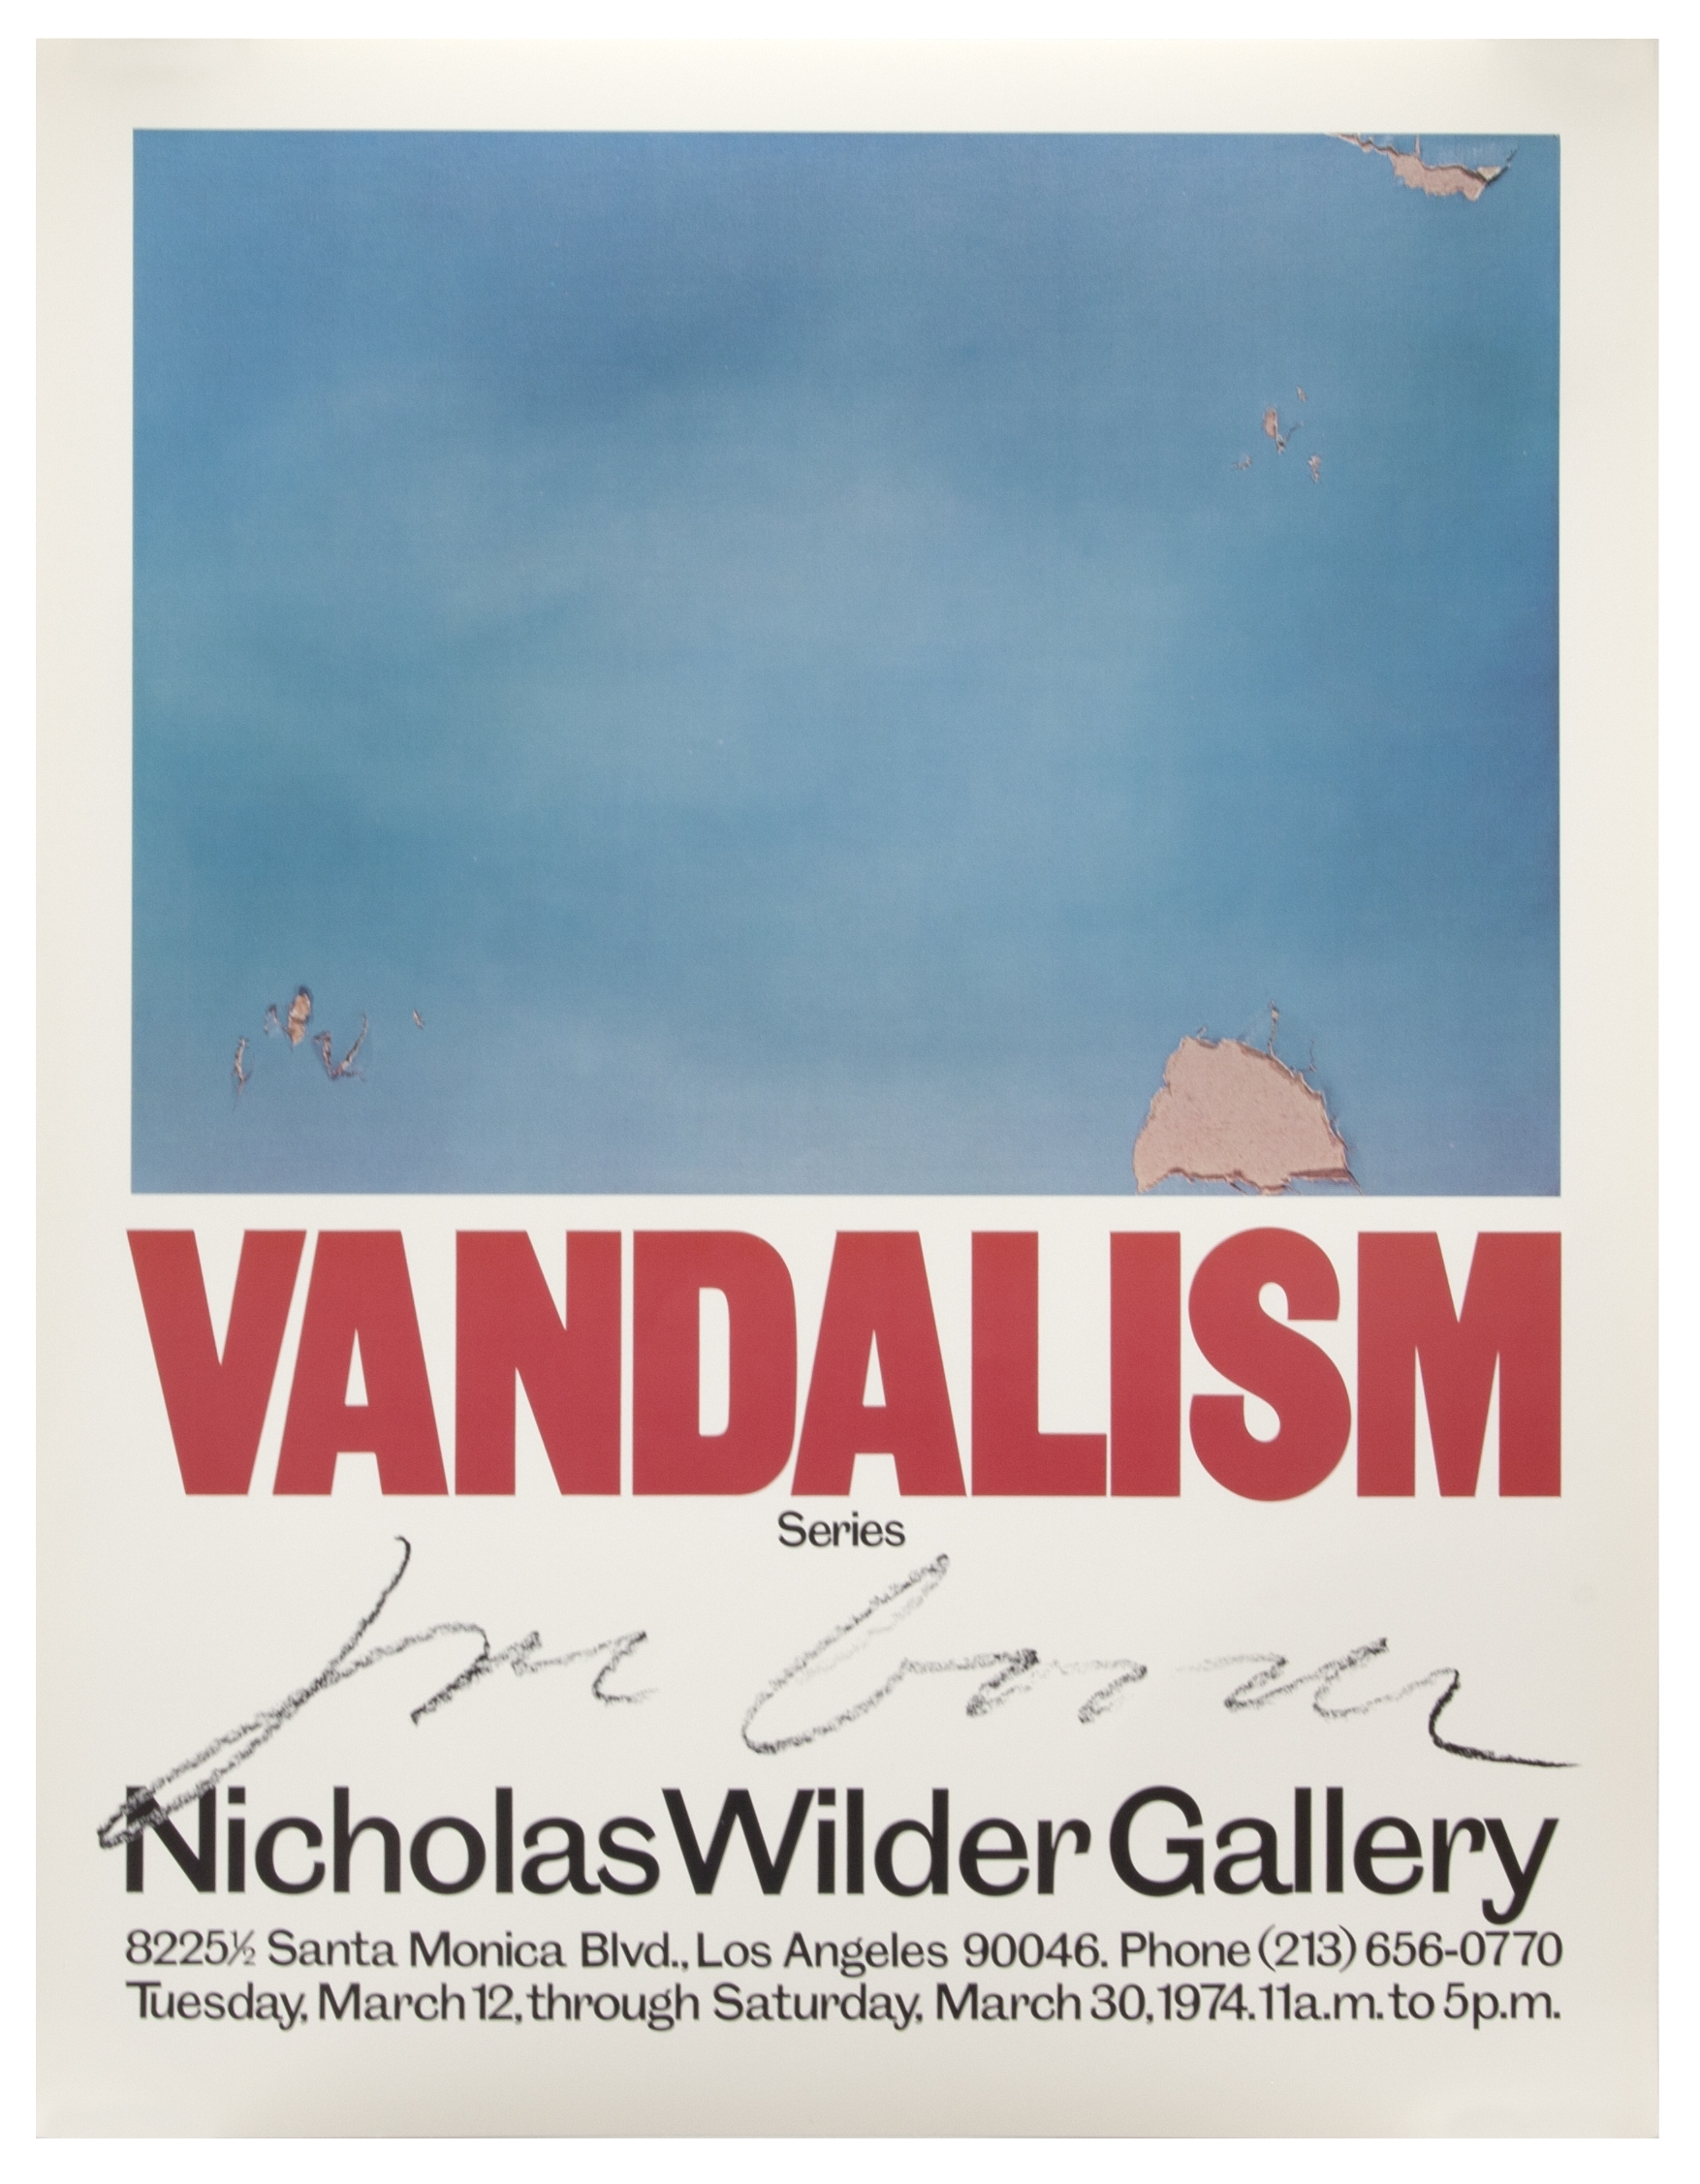 The 1974 poster for the Joe Goode exhibition titled Vandalism, at the Nicholas Wilder Gallery.